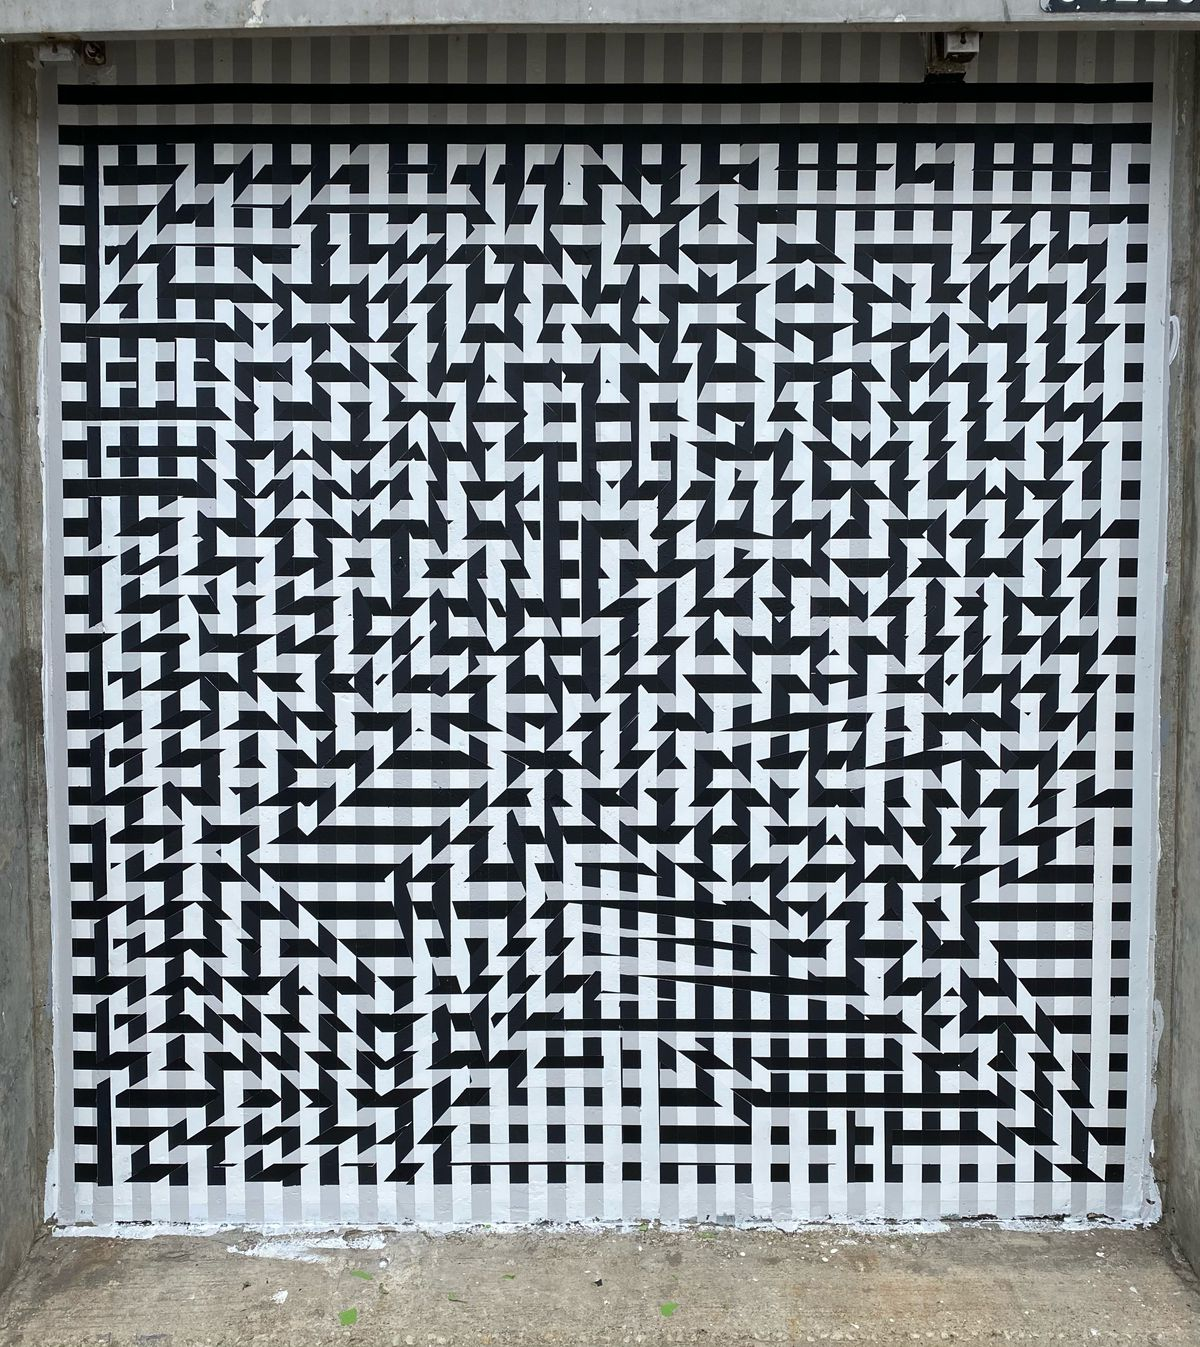 """Daniel Shoykhet's mural """"KVTNO9"""" at Hubbard Street and Milwaukee Avenue stands for """"Kinetic Visual Test Number 9."""" It's the ninth installment in a series. He says he hopes to do at least 60 more works in the same series."""